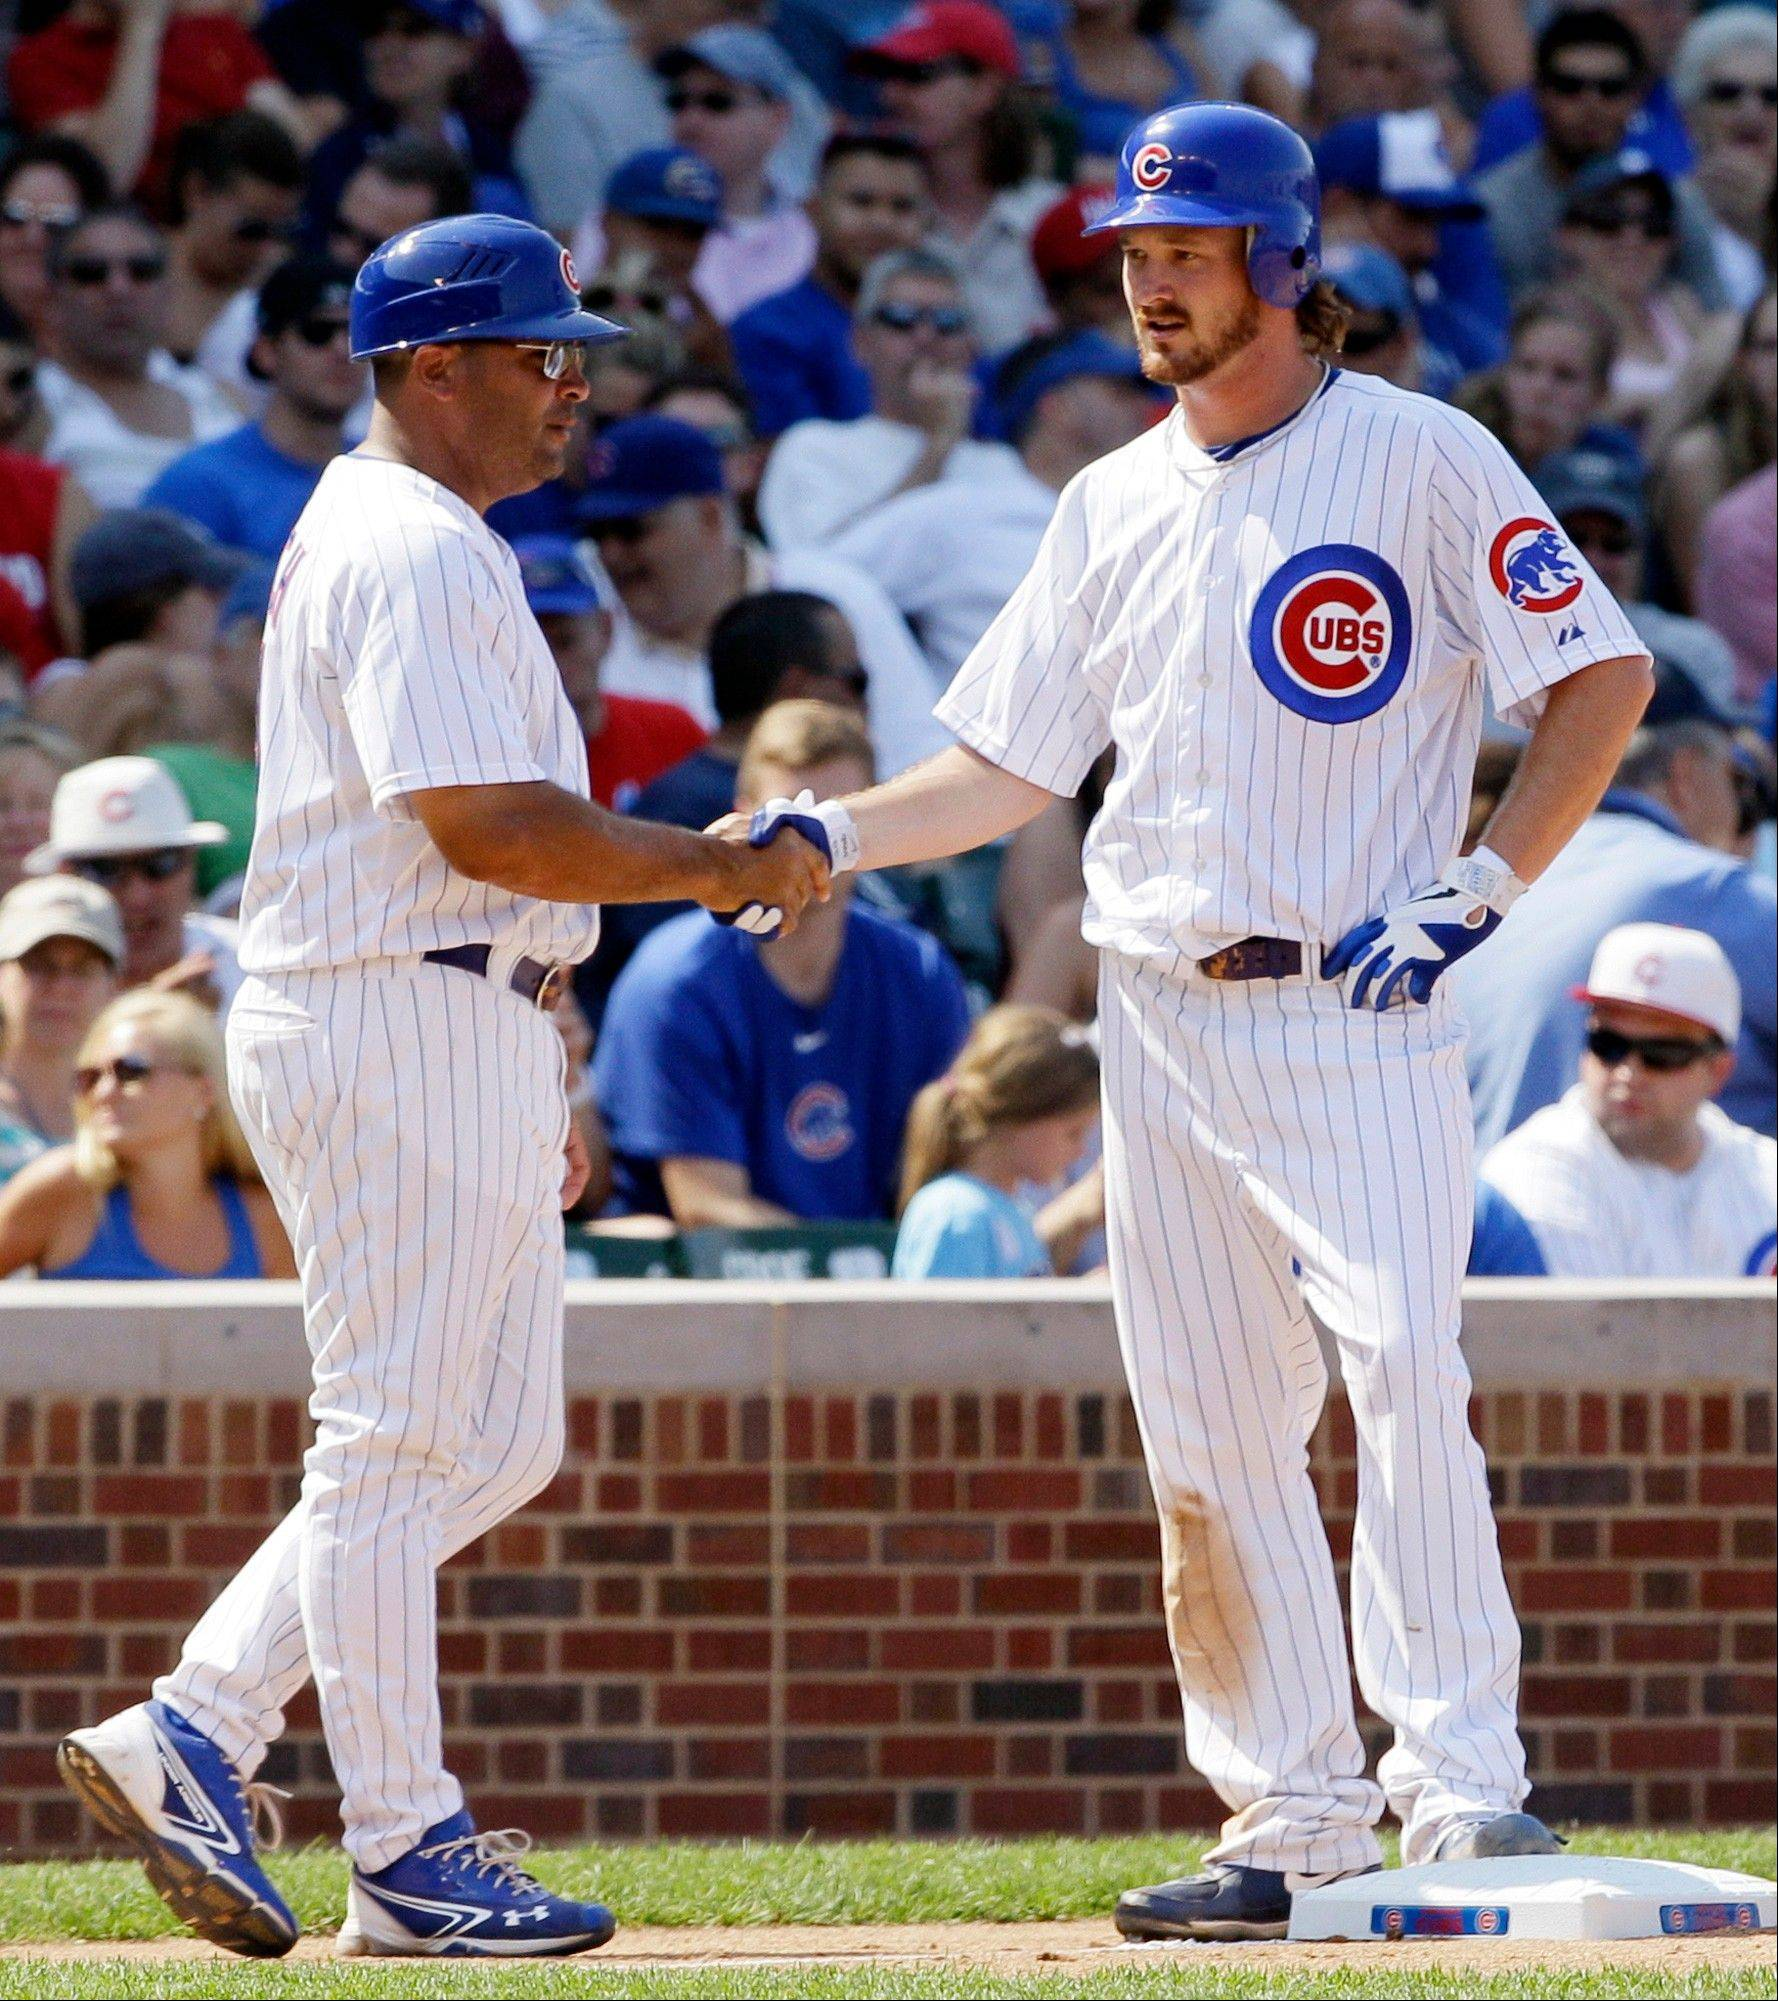 While Cubs pitcher Travis Wood, right, didn't make the club out of spring training, he is a key part of it now. Wood won his third straight game on Sunday.